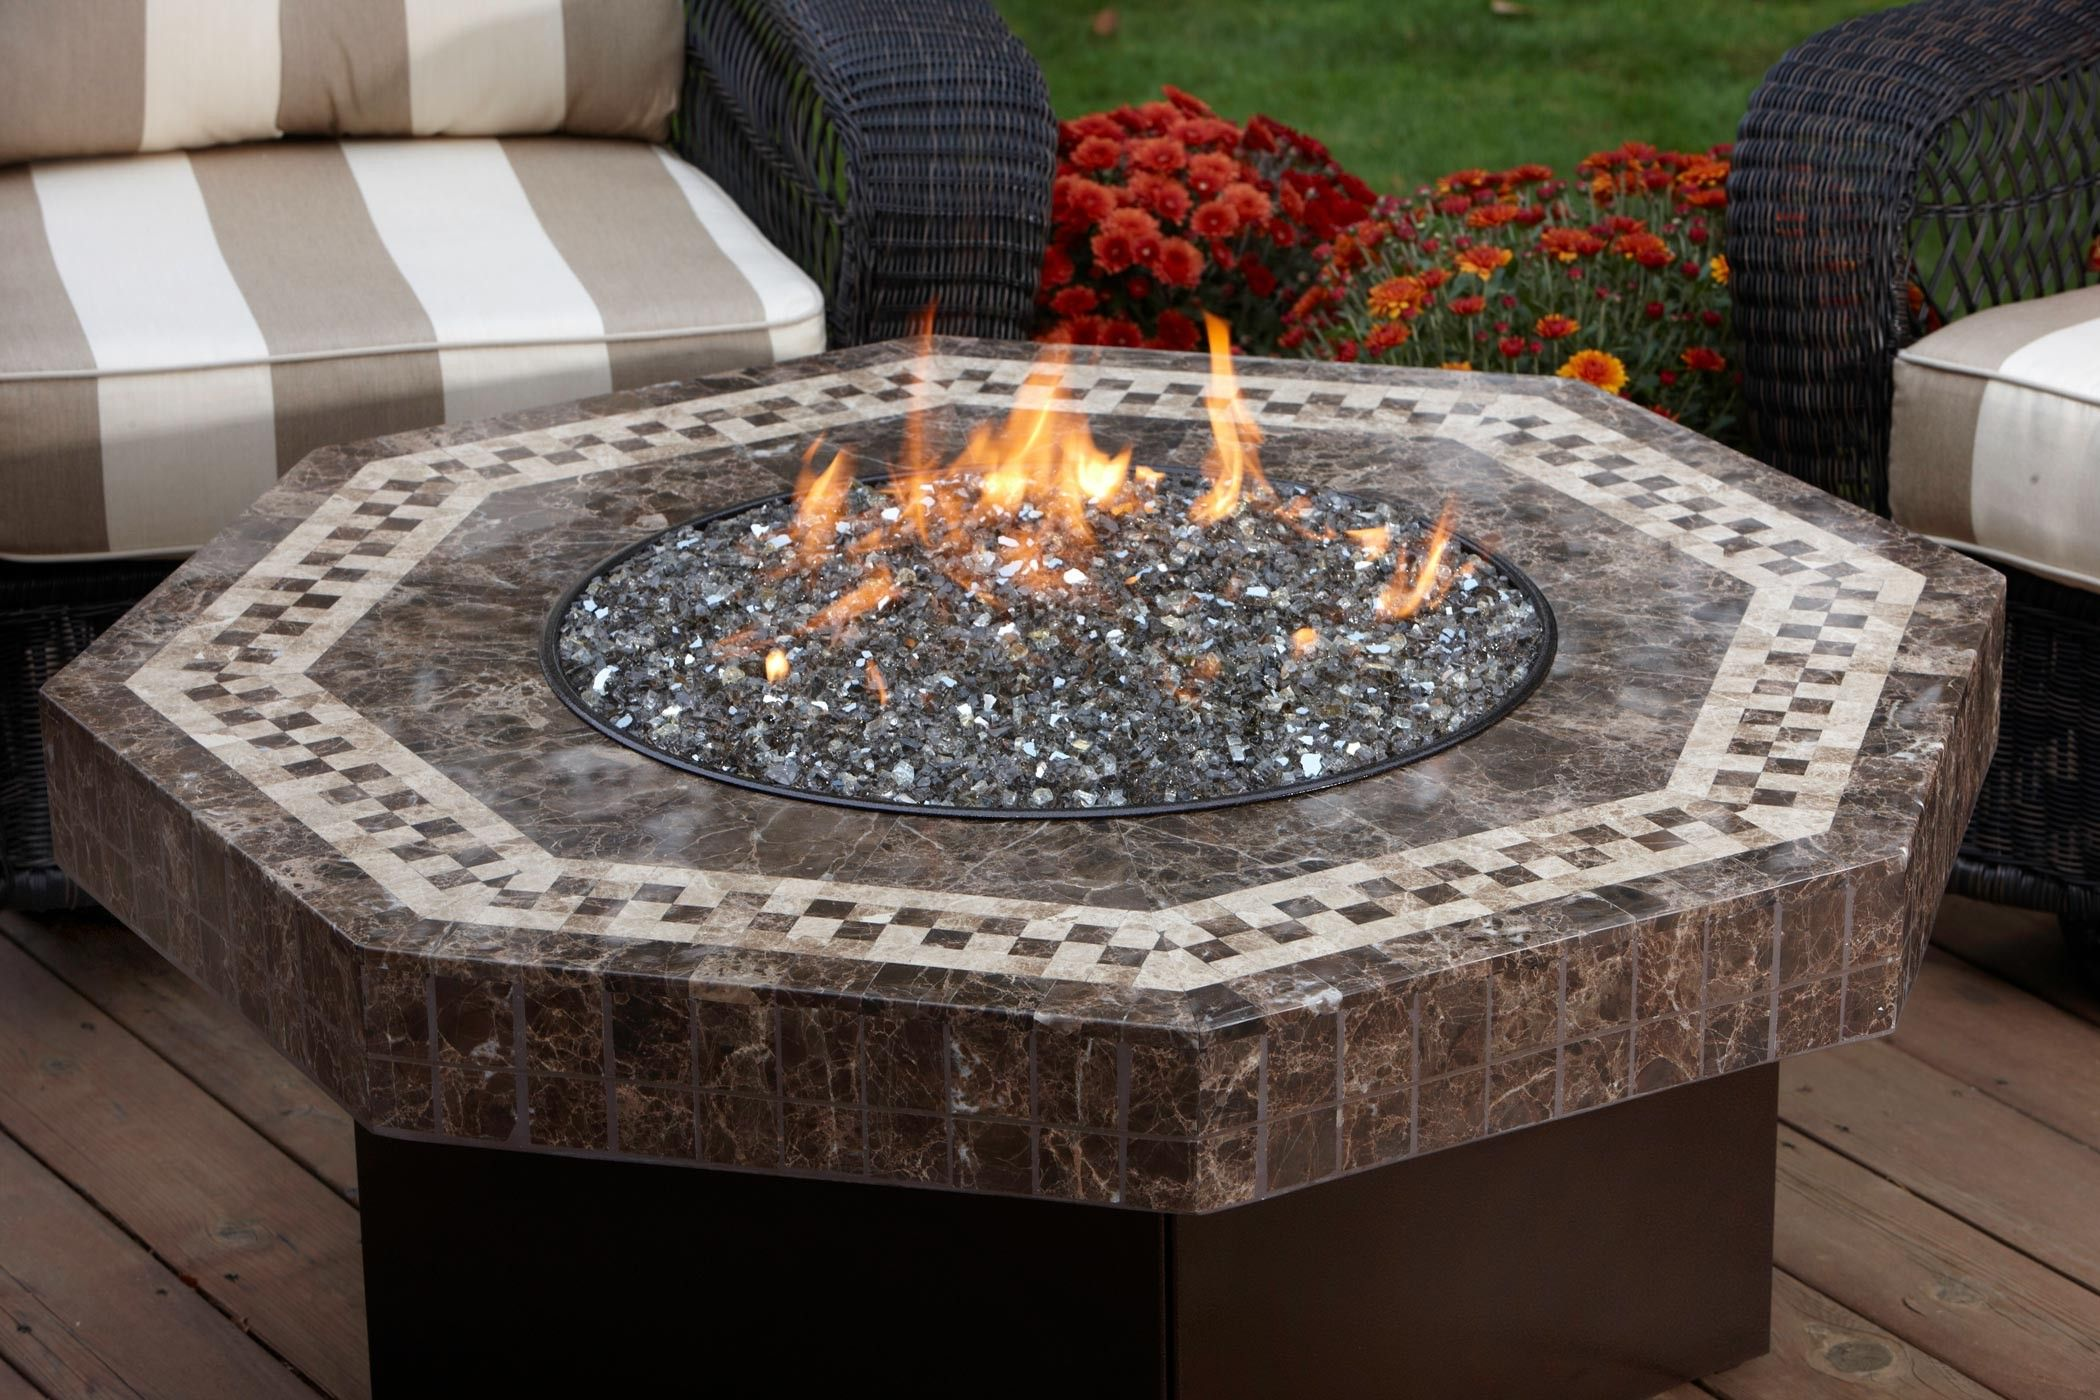 Marble fire table perfect for sipping wine and keeping warm curiosity amusing oriflamme fire table venetian elegance outstanding propane fire pits for decks geotapseo Images